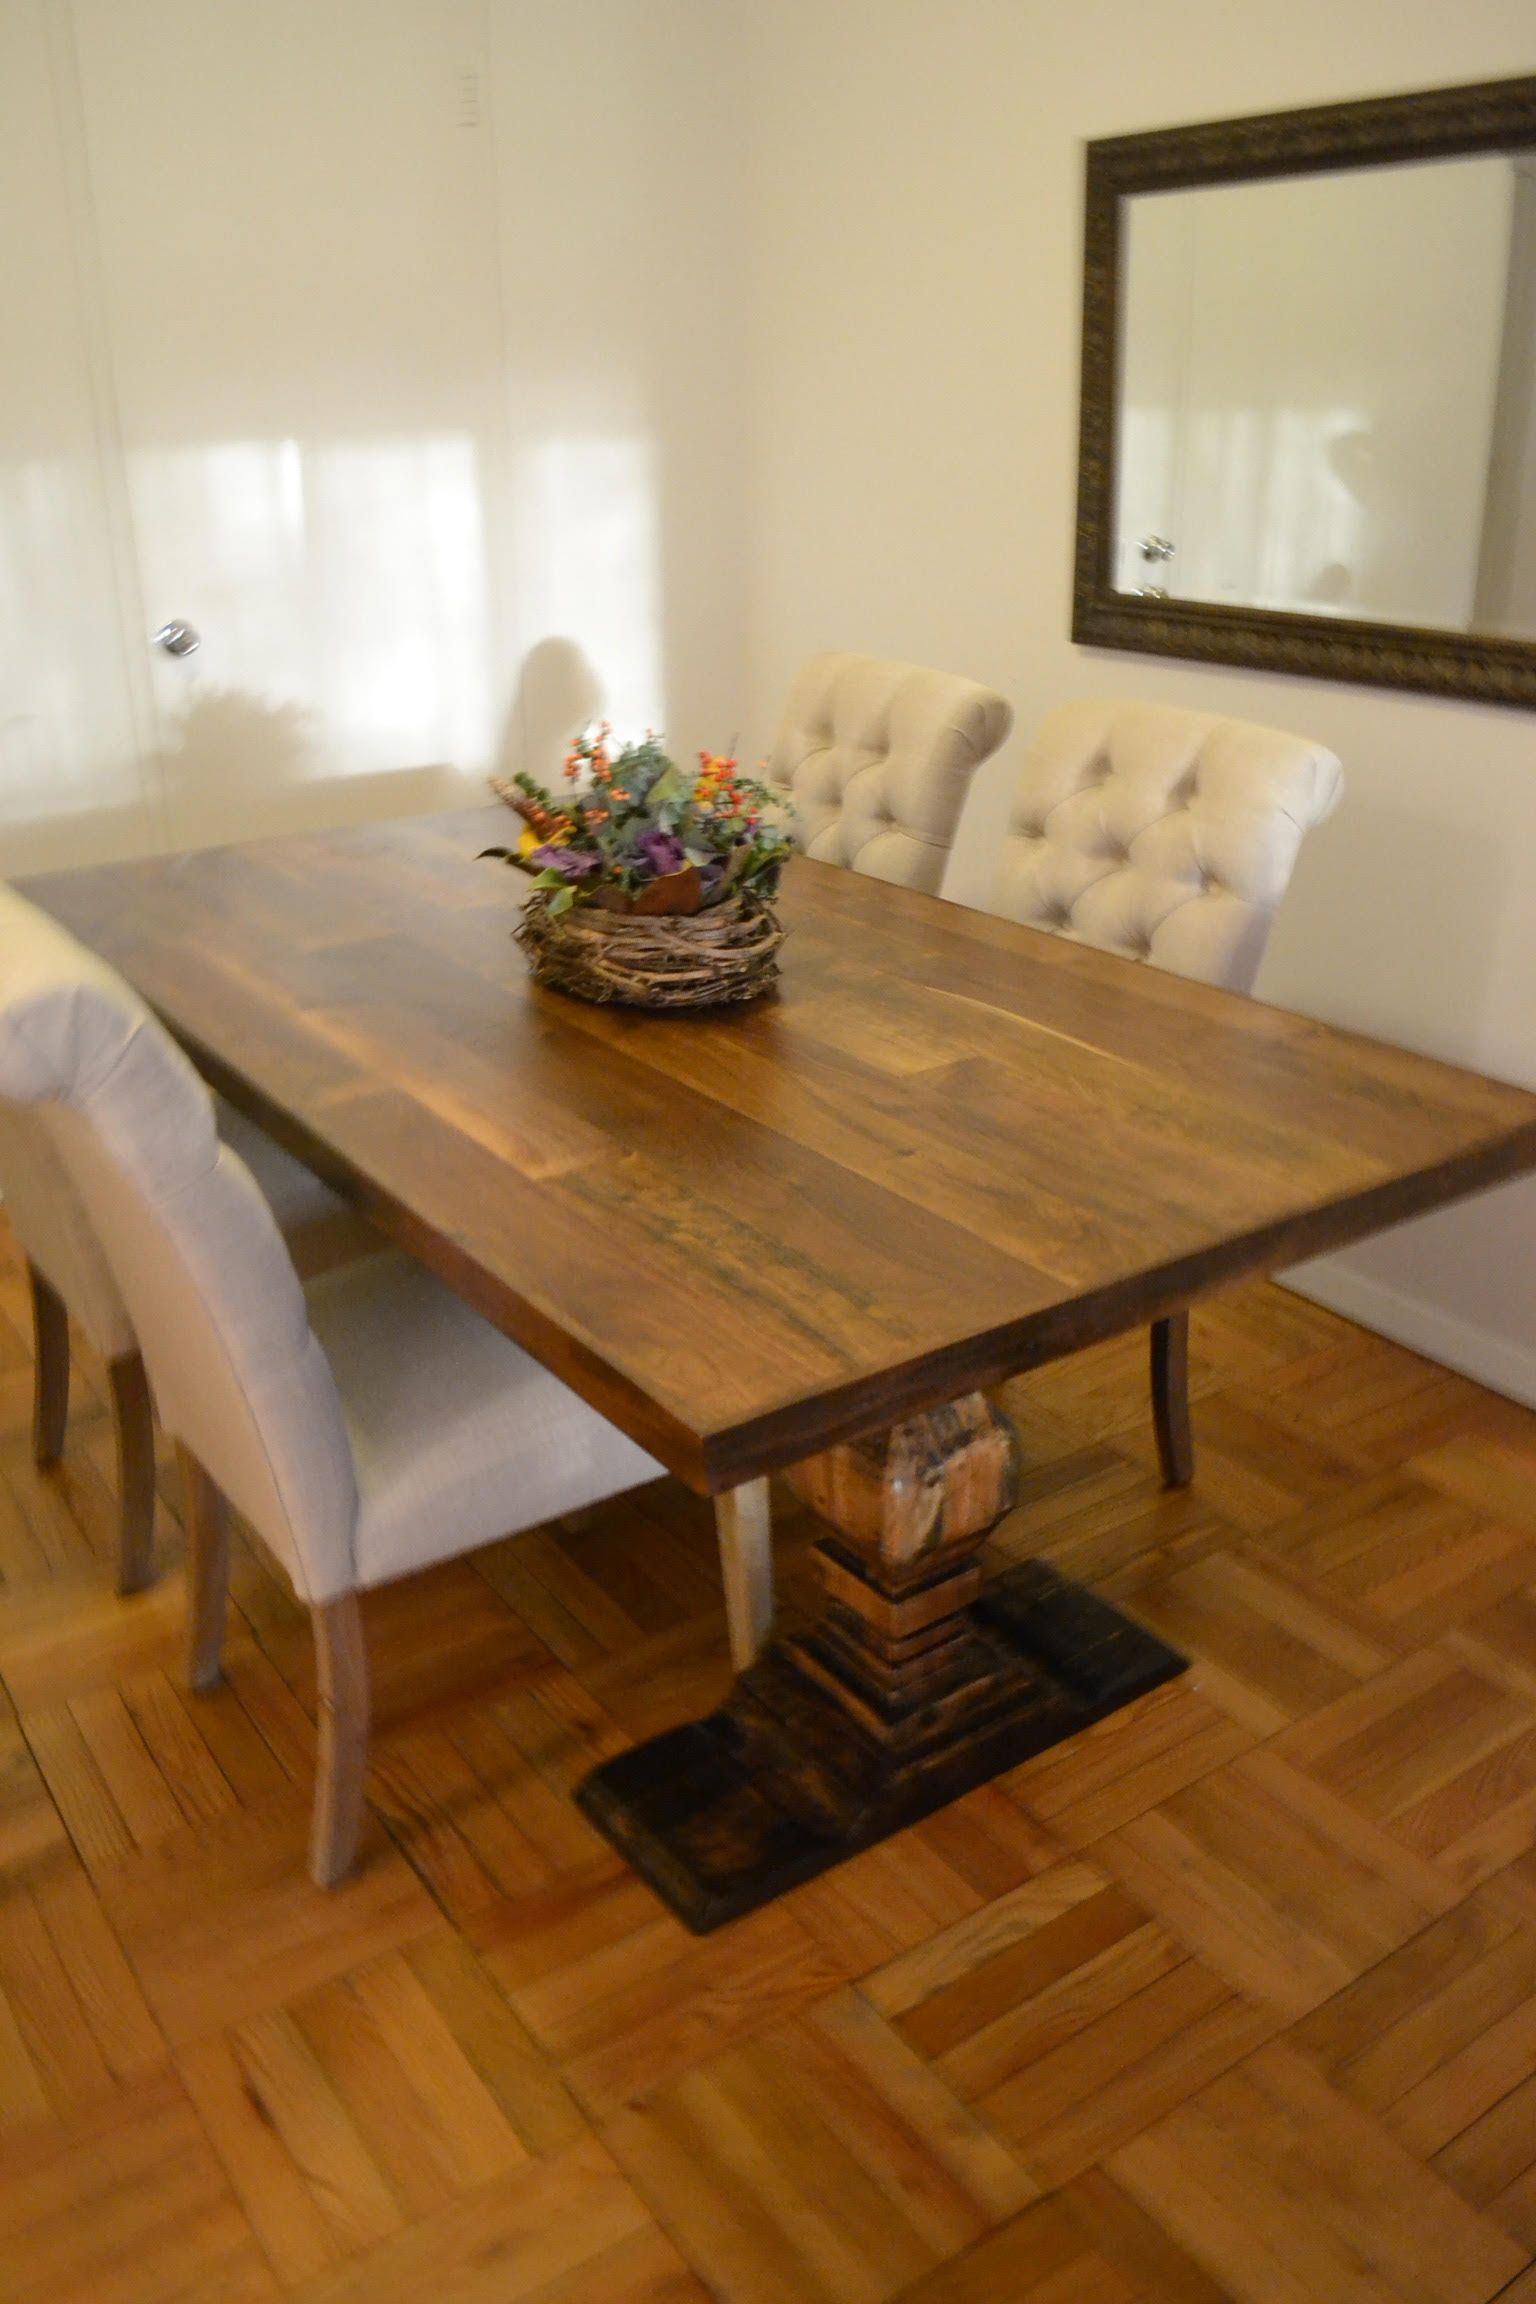 Hand Made 5 Foot Dining Room Table Mixed Species Wood With Custom Designed Legs By The Lazarus